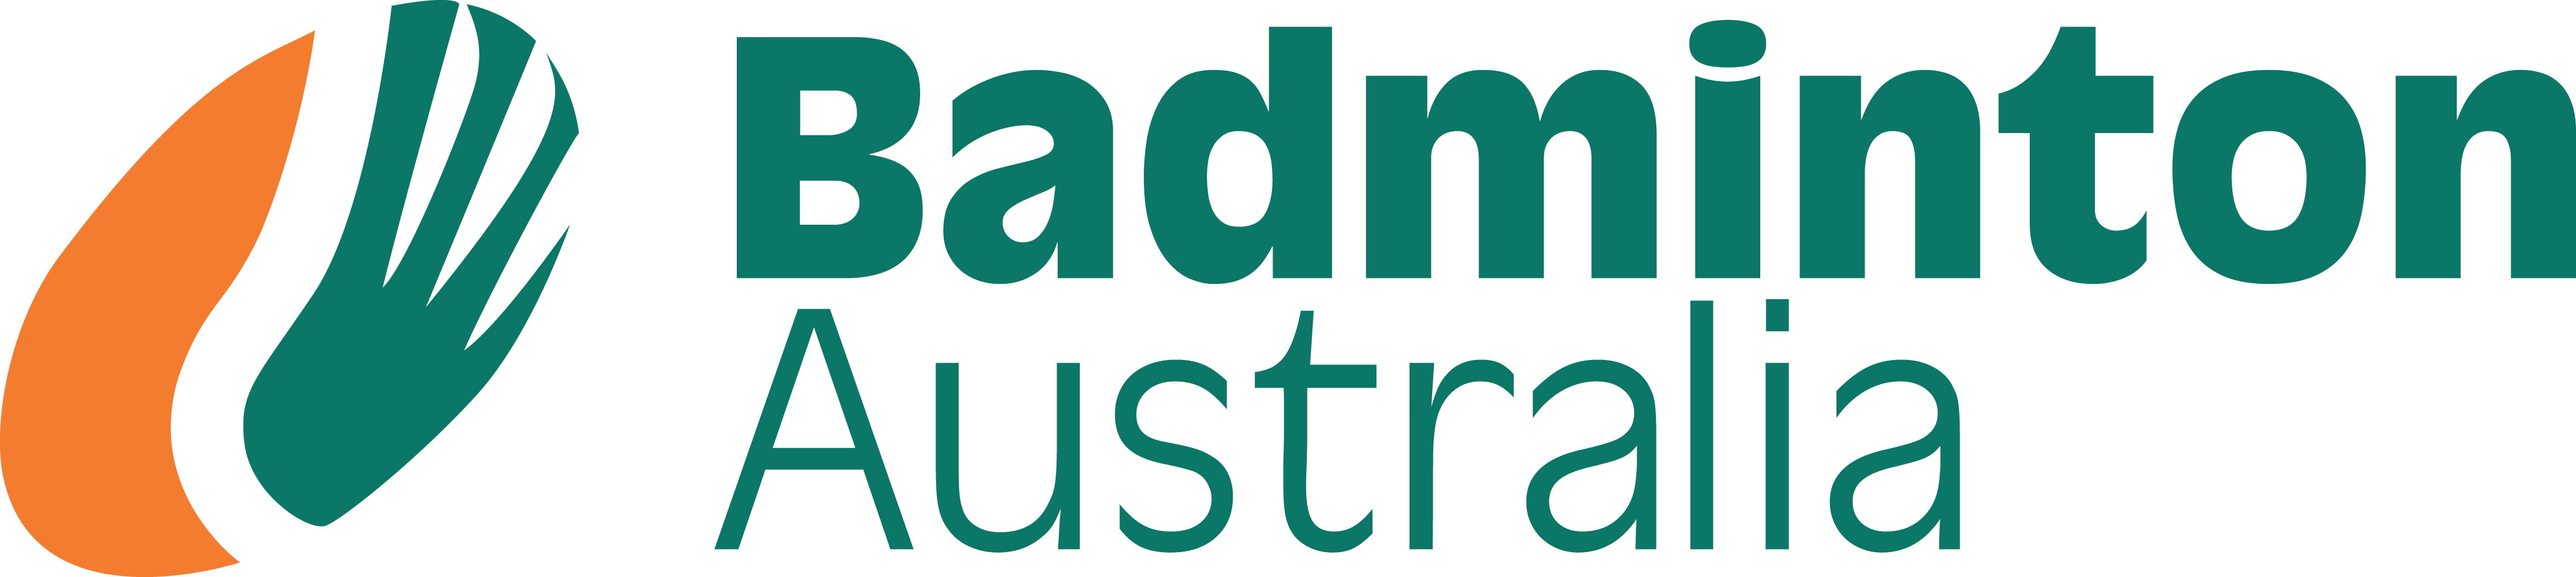 Badminton Australia Foundation Logo